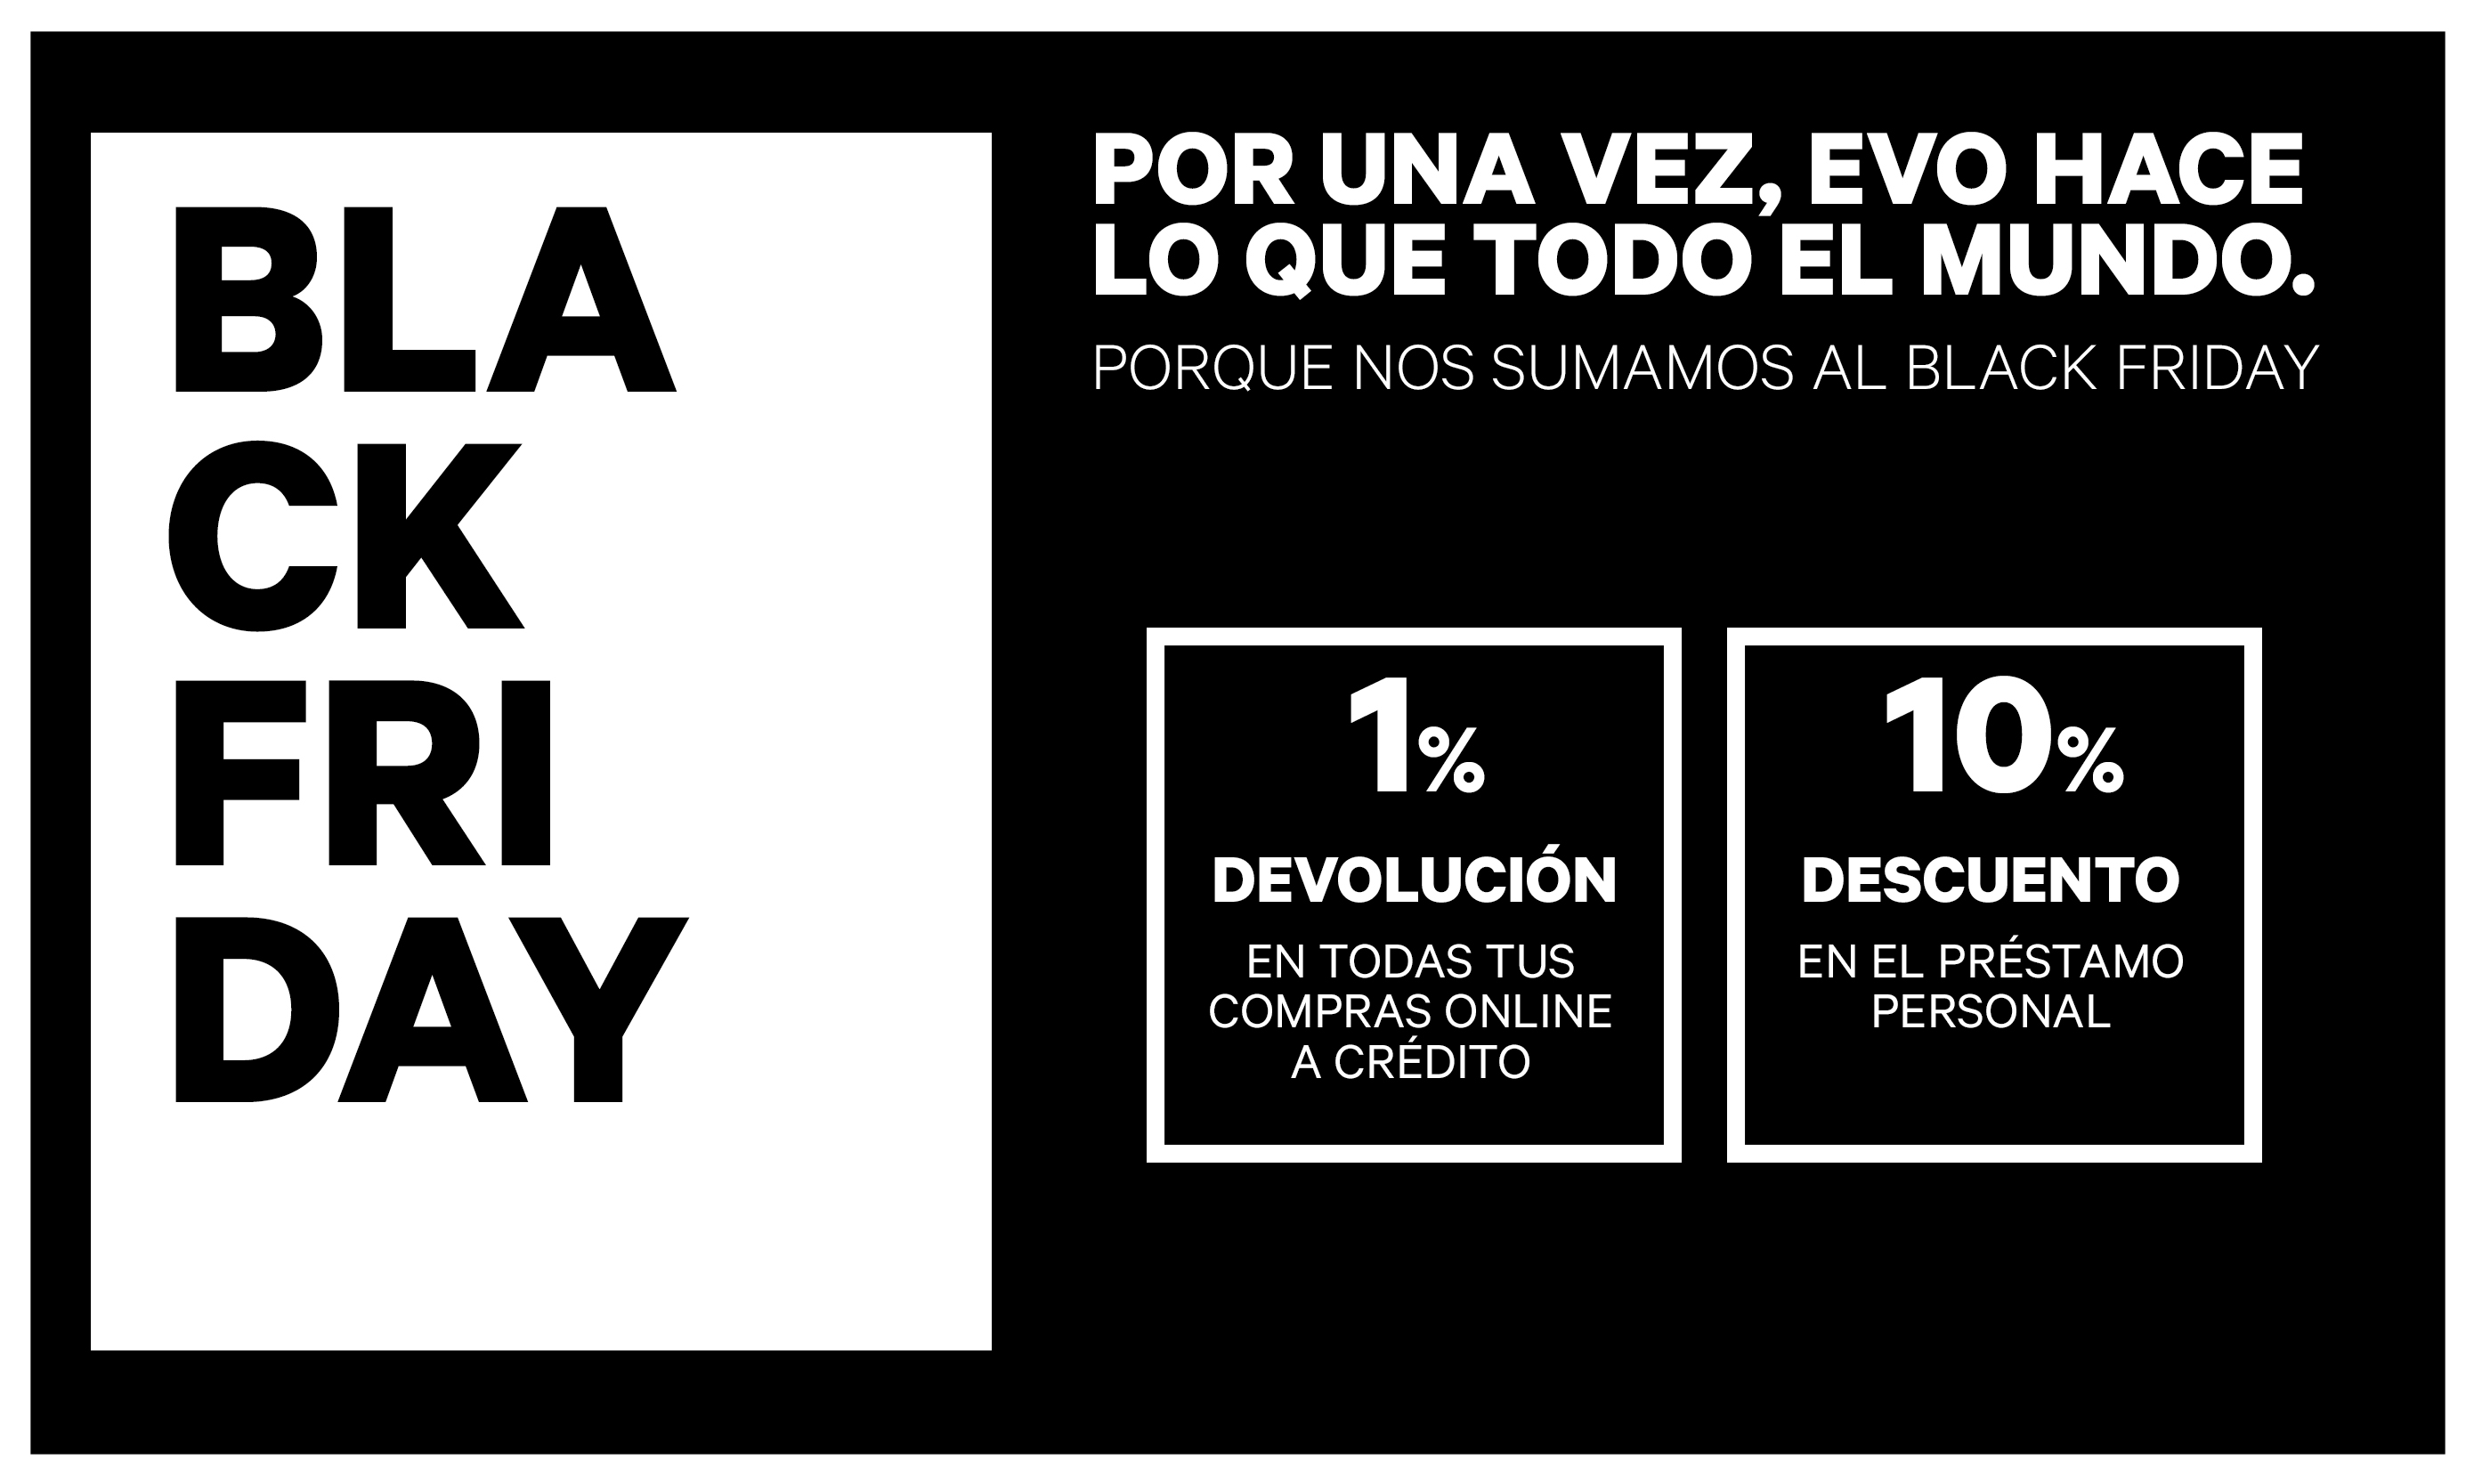 EVO se suma al Black Friday